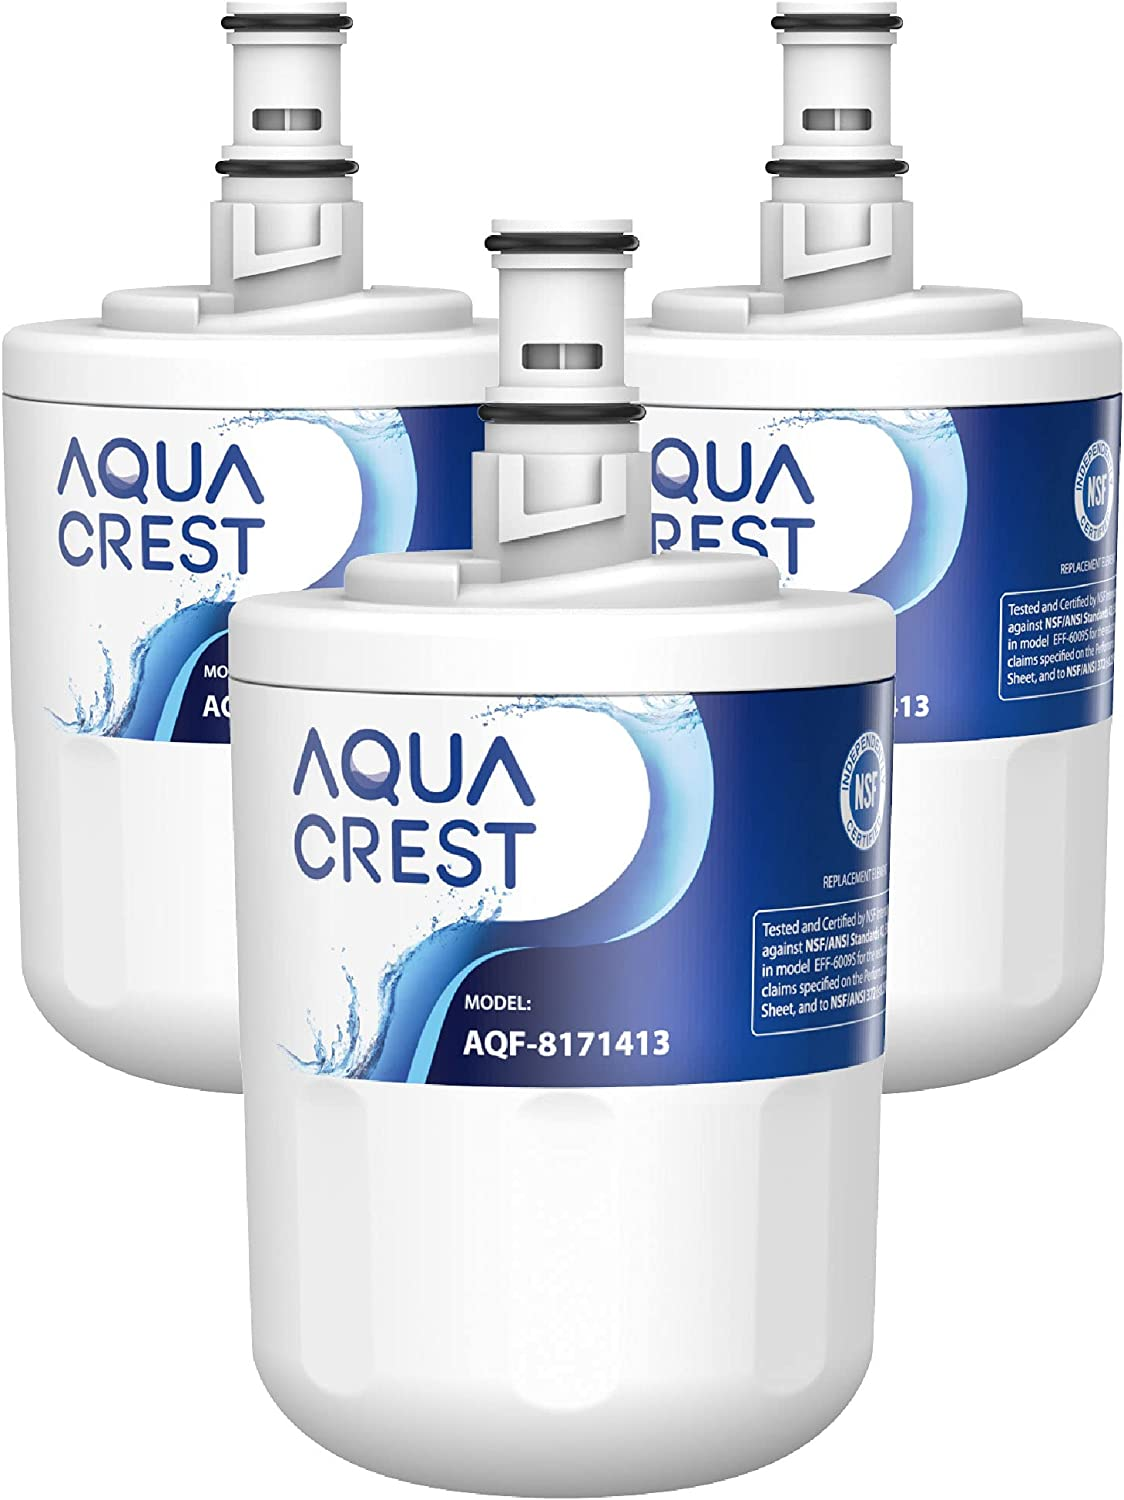 AQUA CREST 8171413 Refrigerator Water Filter Wh for New Surprise price products world's highest quality popular Replacement